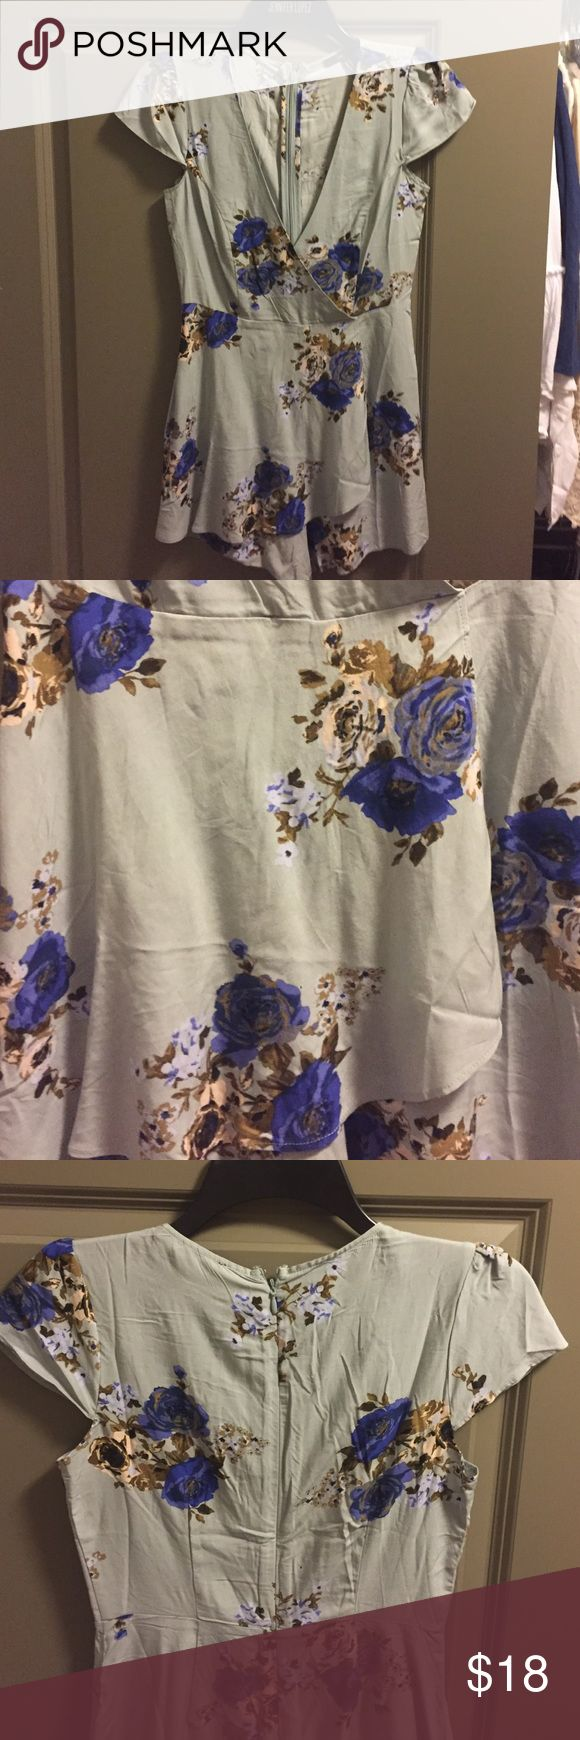 Forever 21 Floral Romper This is a brand new outfit from Forever 21. Unfortunately it is too small for me and I have to sell 😒 it is the perfect Romper to pair with a long nude cardigan! Size small Pants Jumpsuits & Rompers